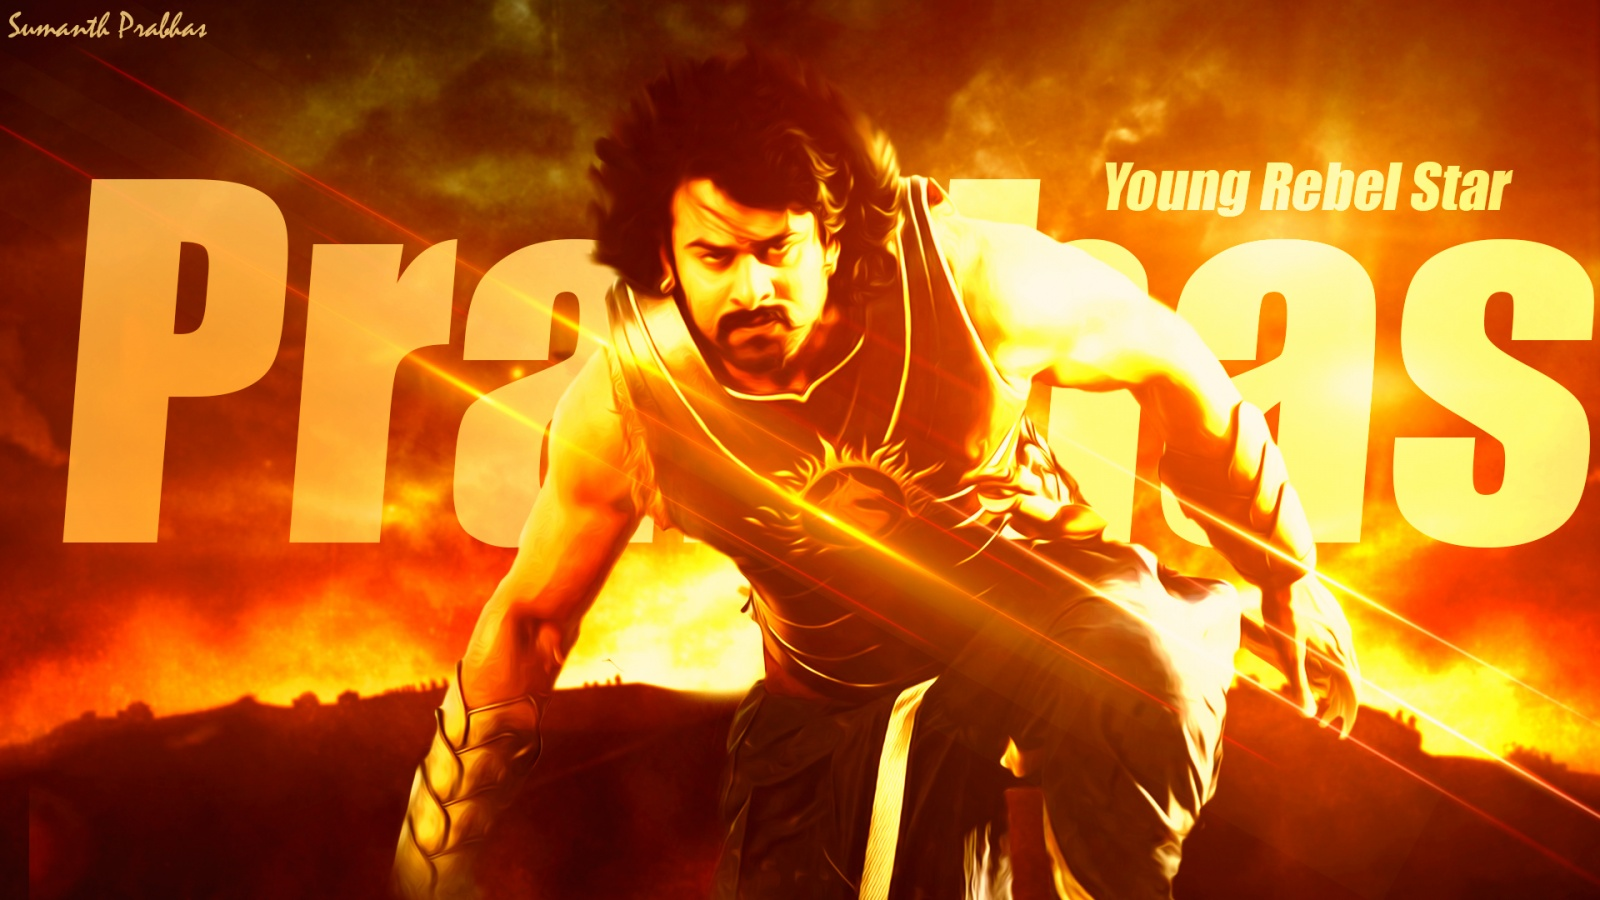 bahubali actor prabhas wallpapers in jpg format for free download